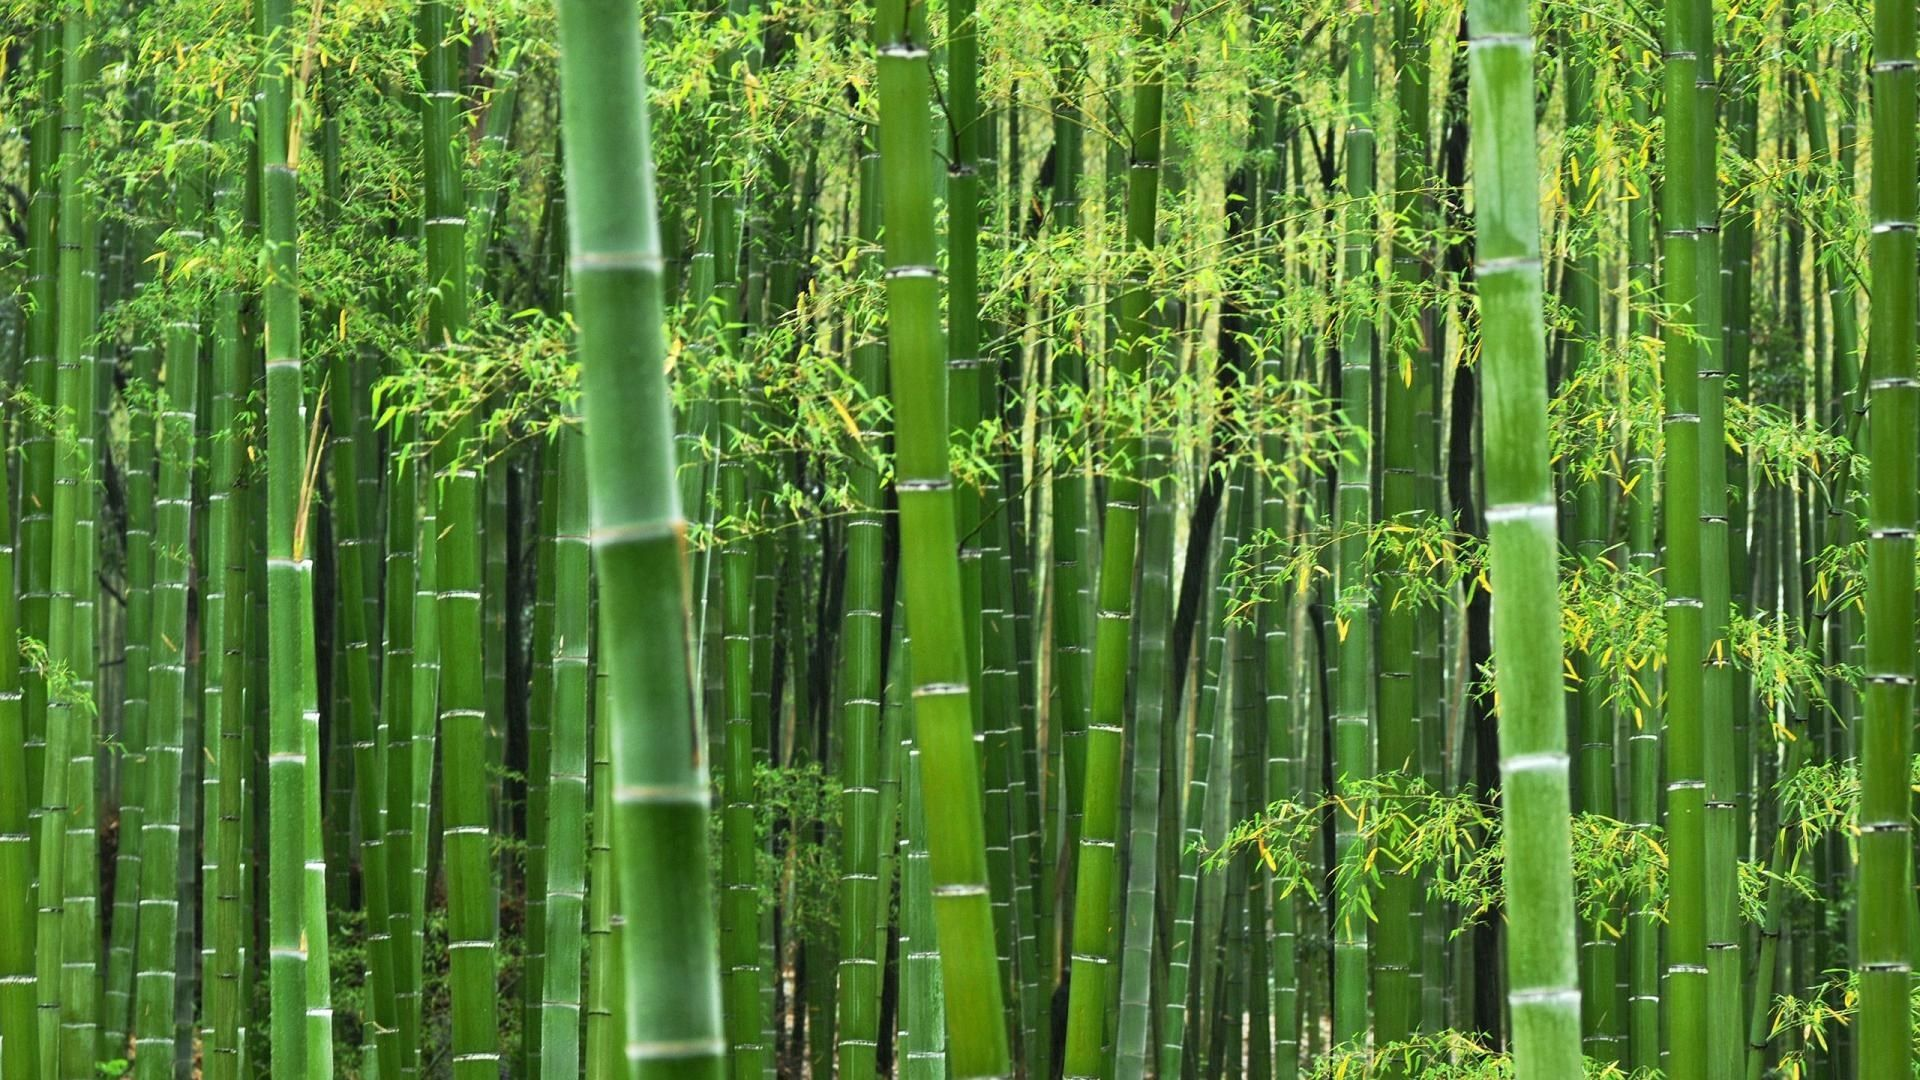 Free Hd Bamboo Wallpapers Download Bamboo Wallpaper How